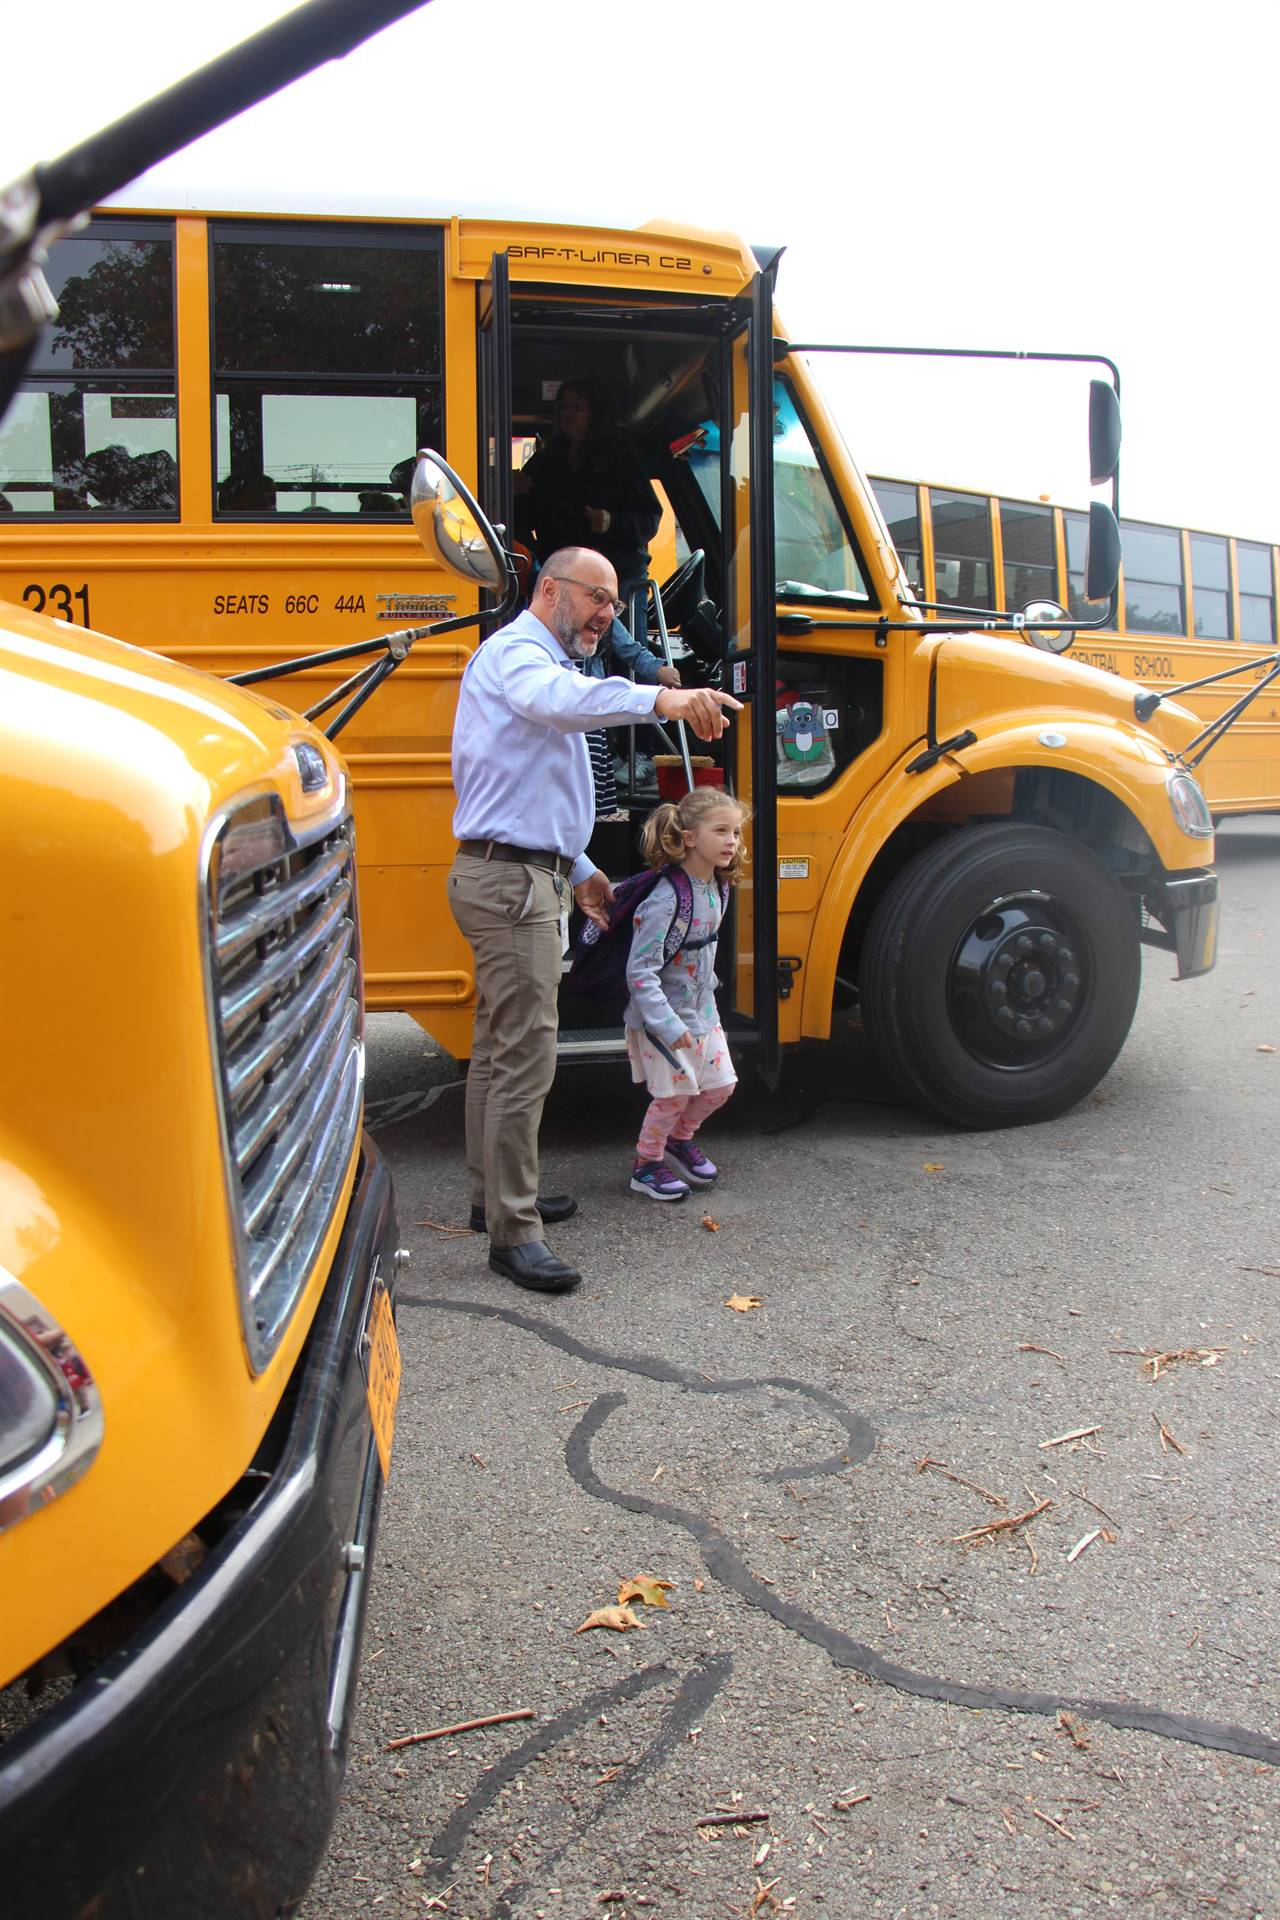 Principal helps girl off bus